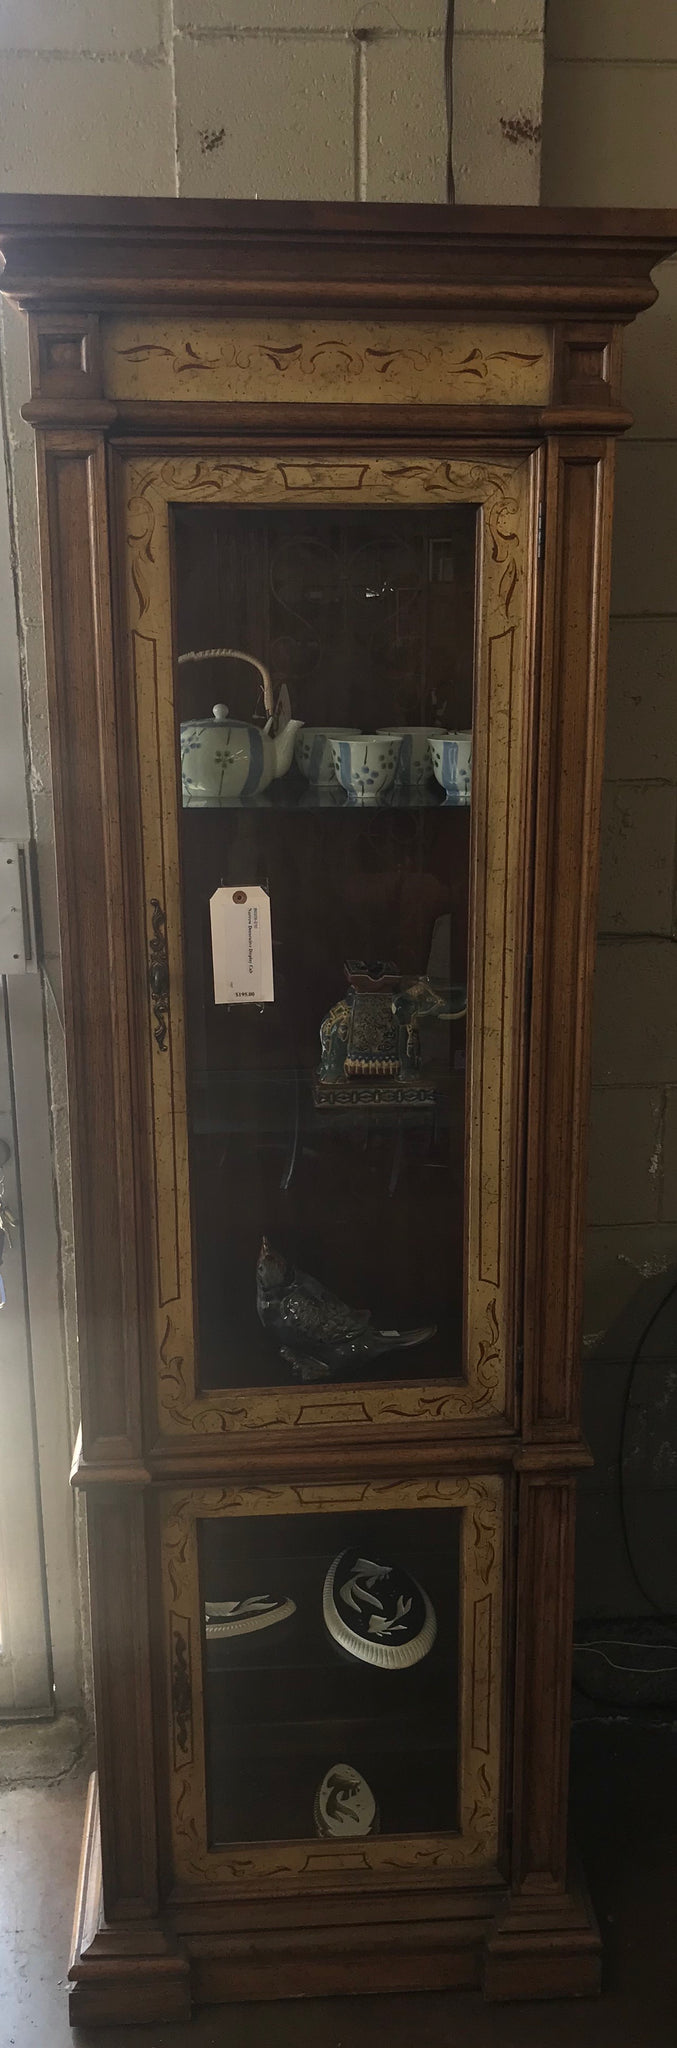 Narrow decorative display cabinet